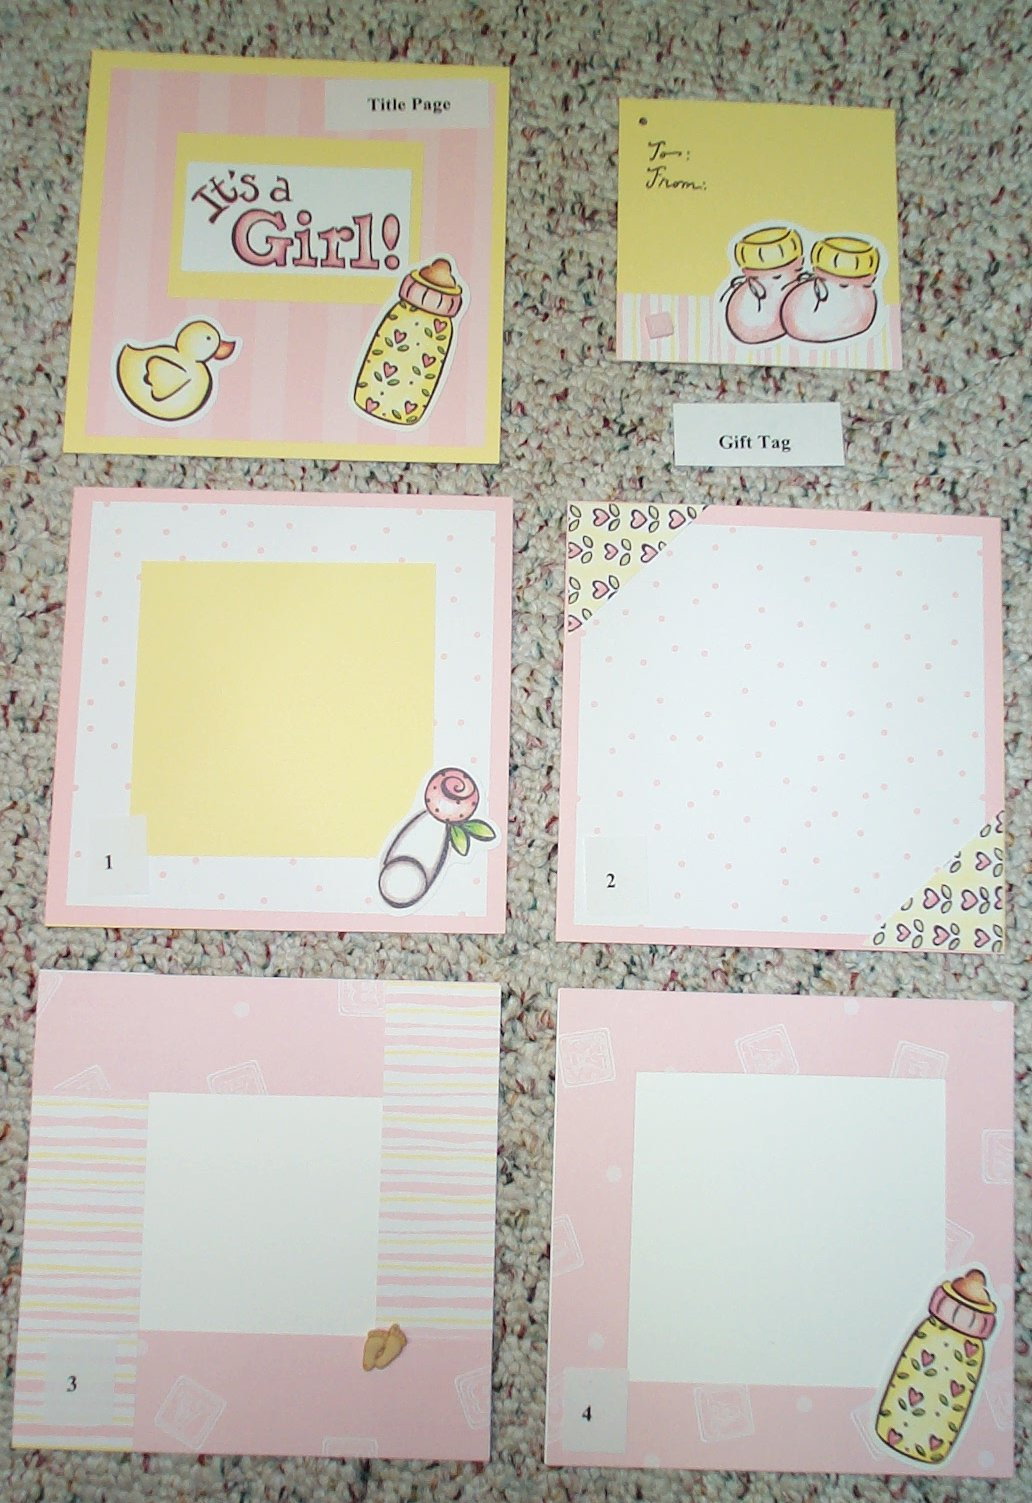 Scrapbook ideas for baby girl - Baby Girl Photo 1 Title Page Gift Tag And Layouts 1 4